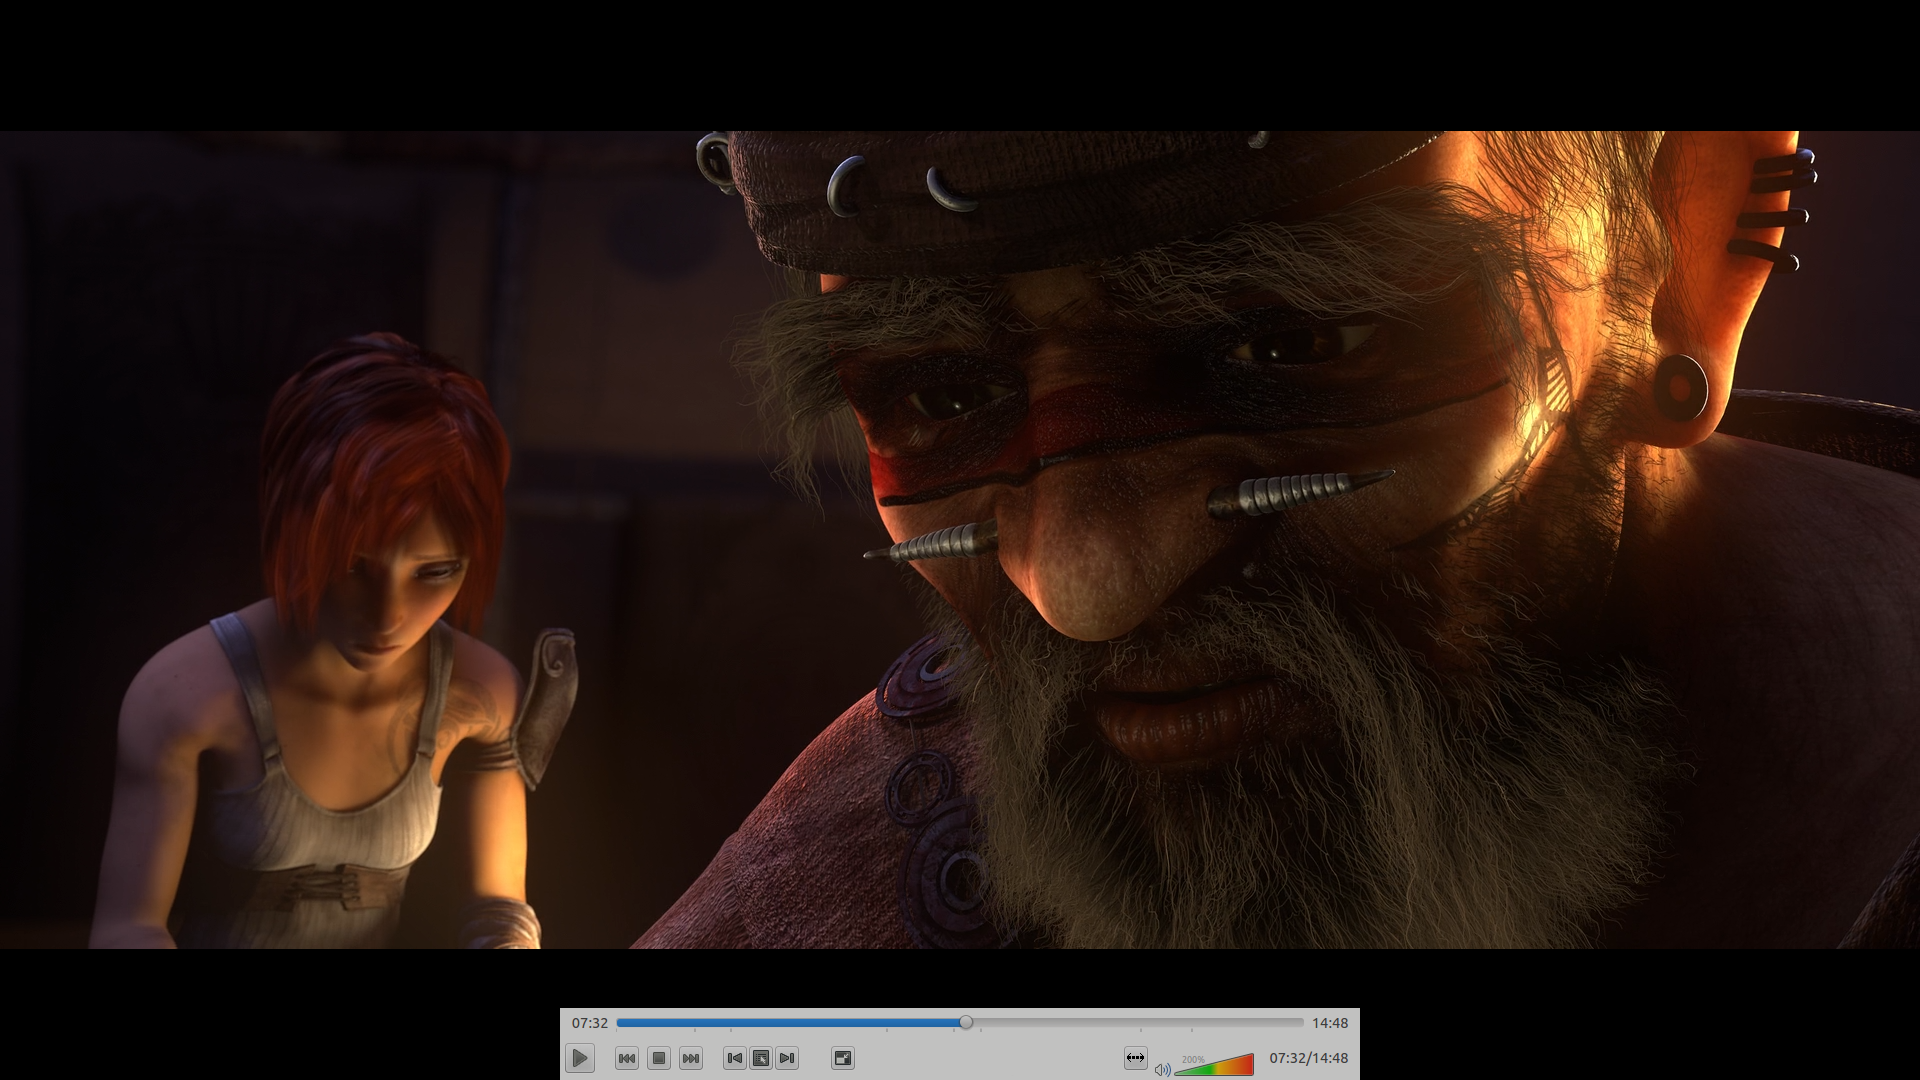 Does anyone know how to enable a floating control bar in VLC